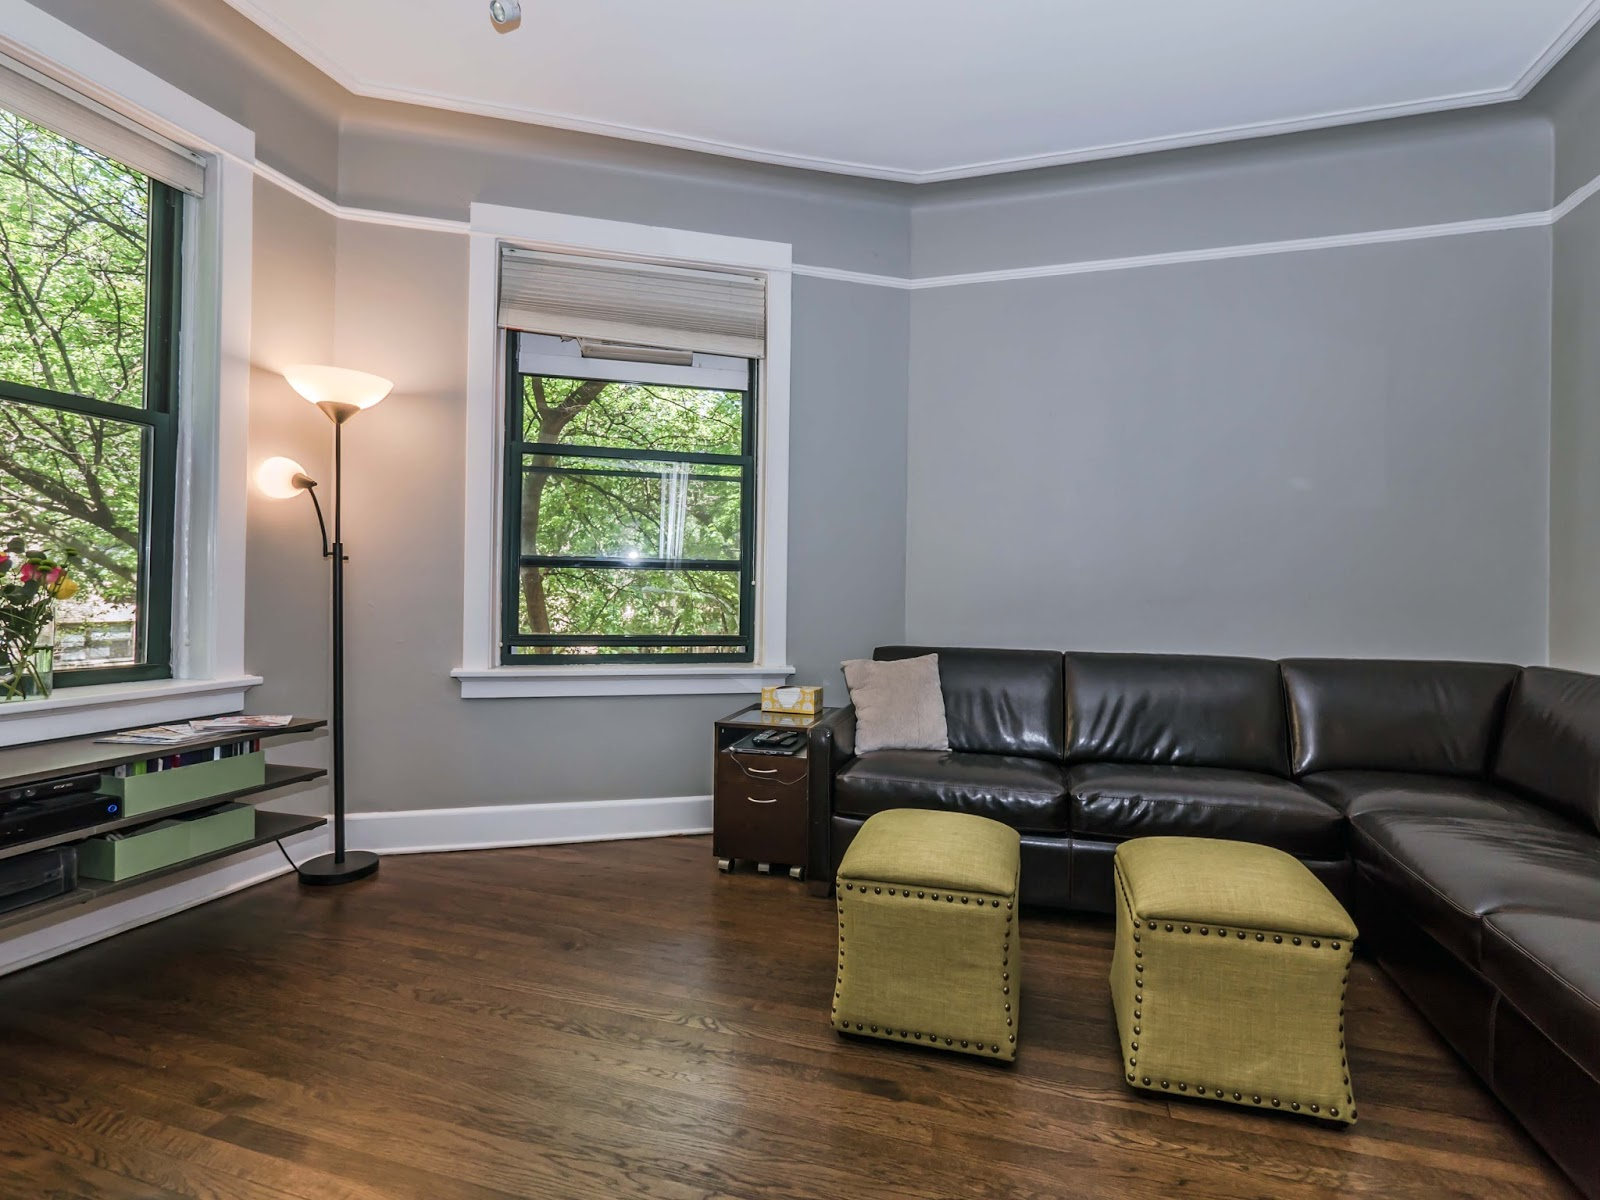 The chicago real estate local new for sale gorgeous east for 2 bedroom with den